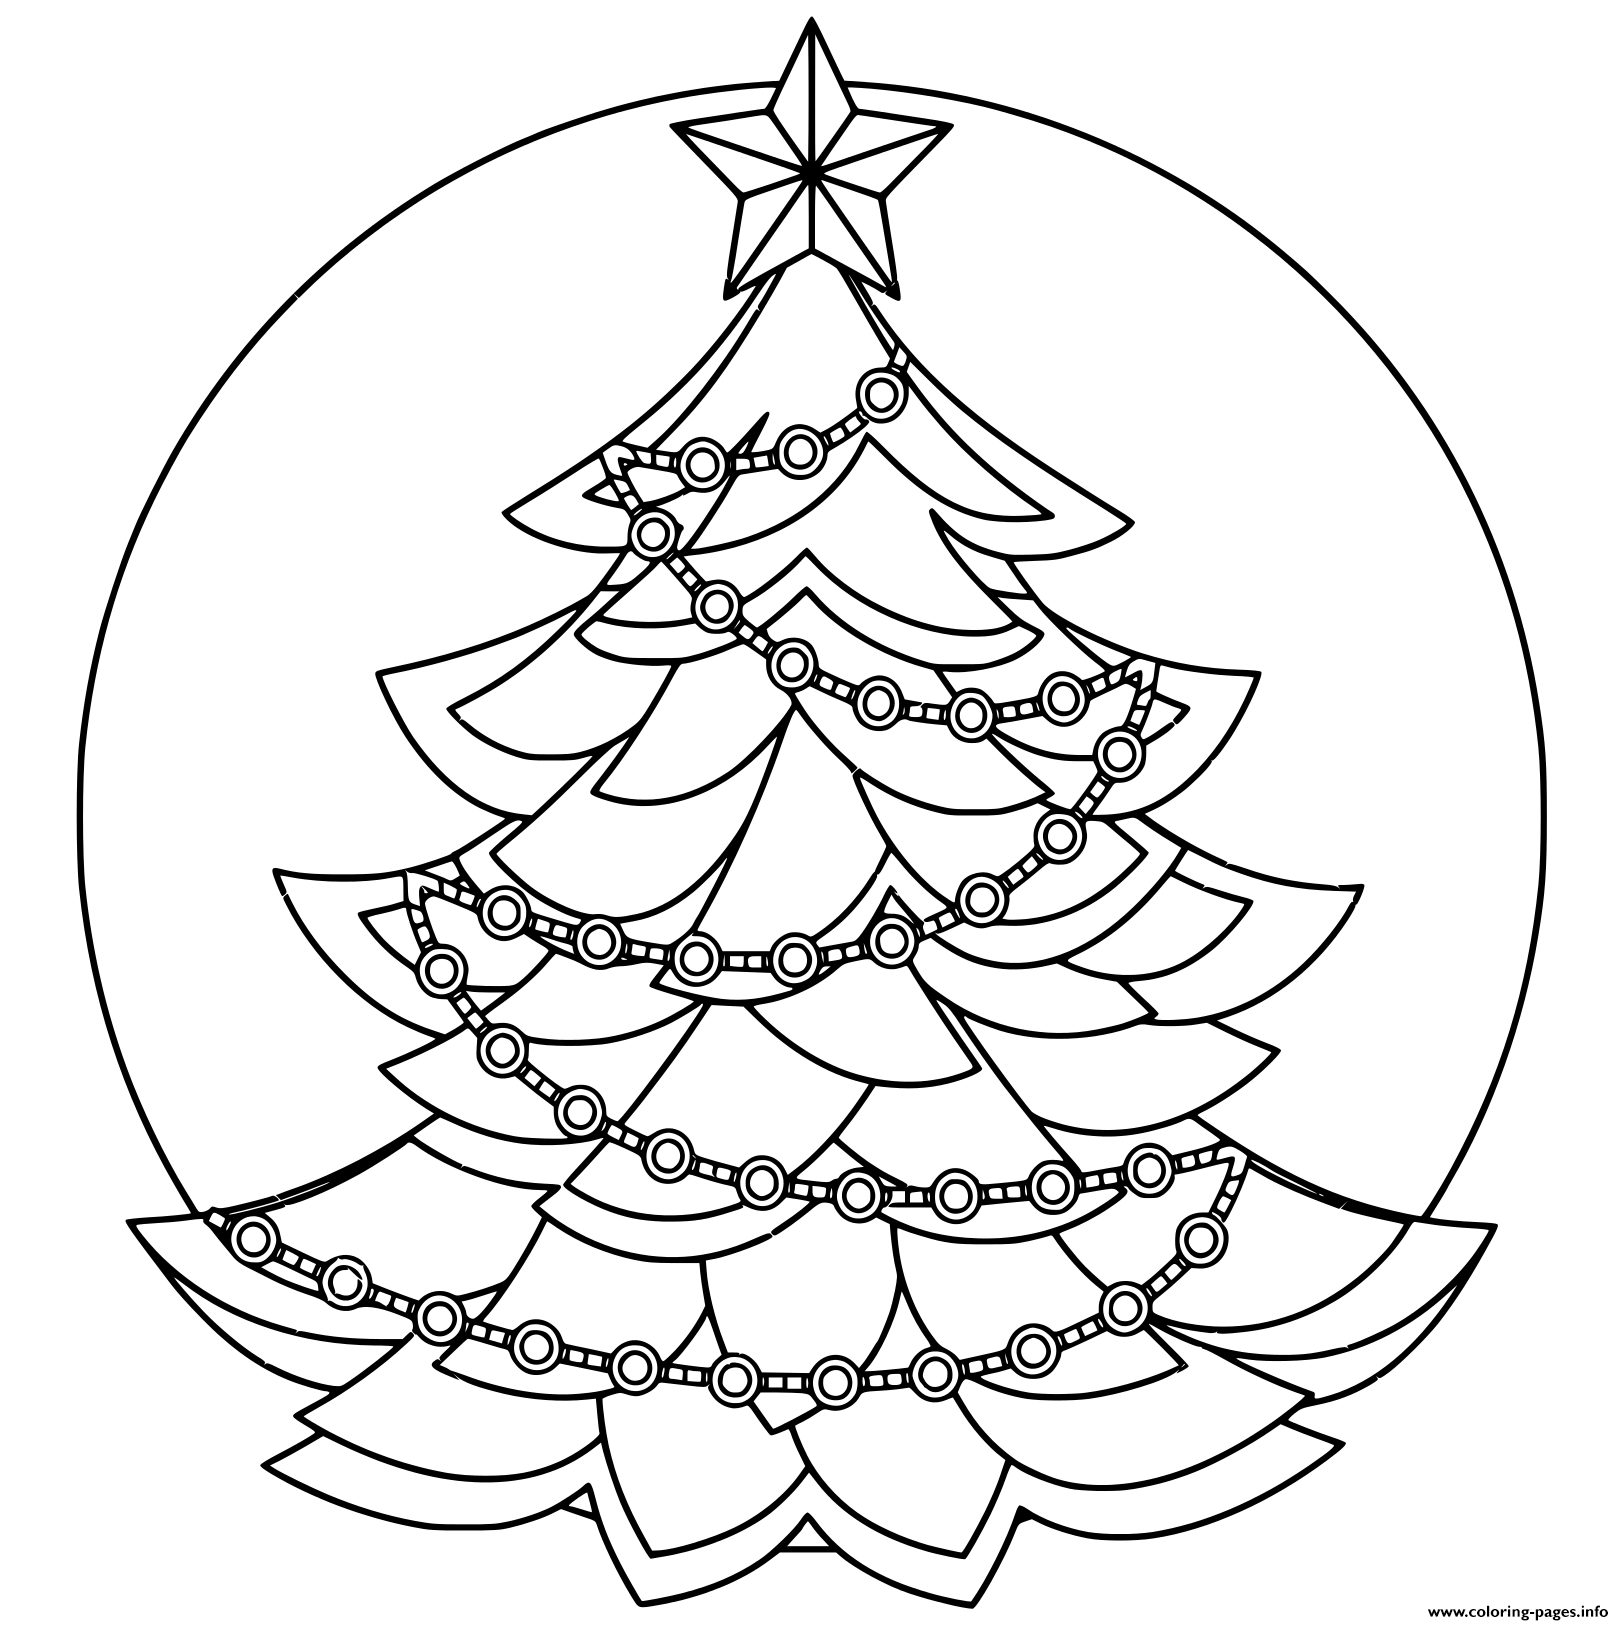 Black And White Christmas Tree Holiday coloring pages